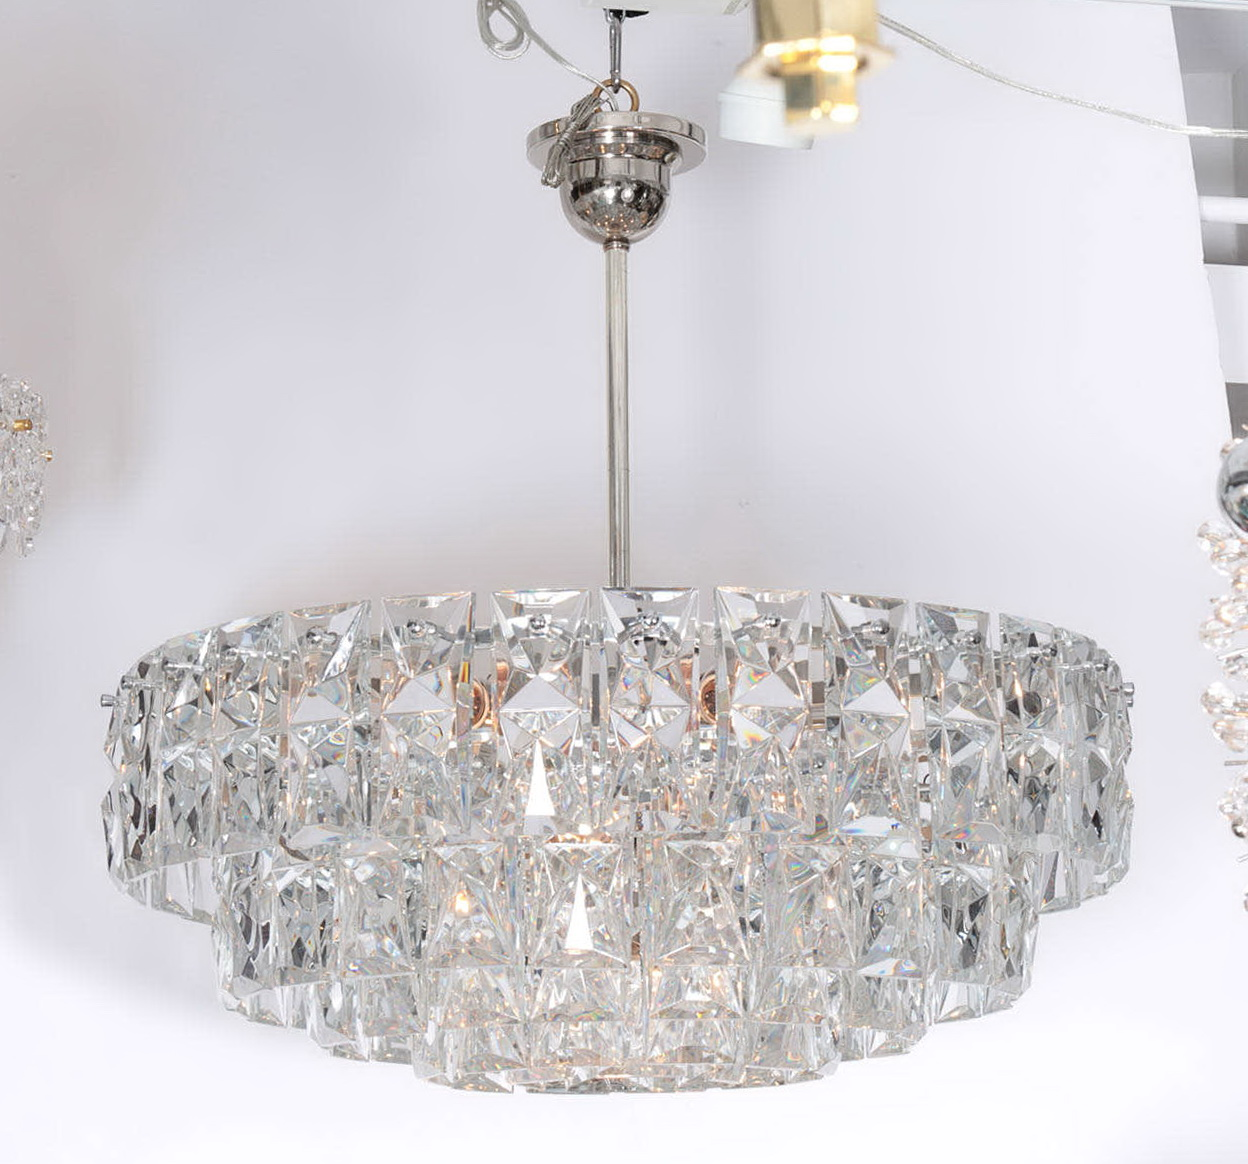 Chandelier Replacement Crystals Rectangular Prism Home Design Ideas - Chandelier spare crystals